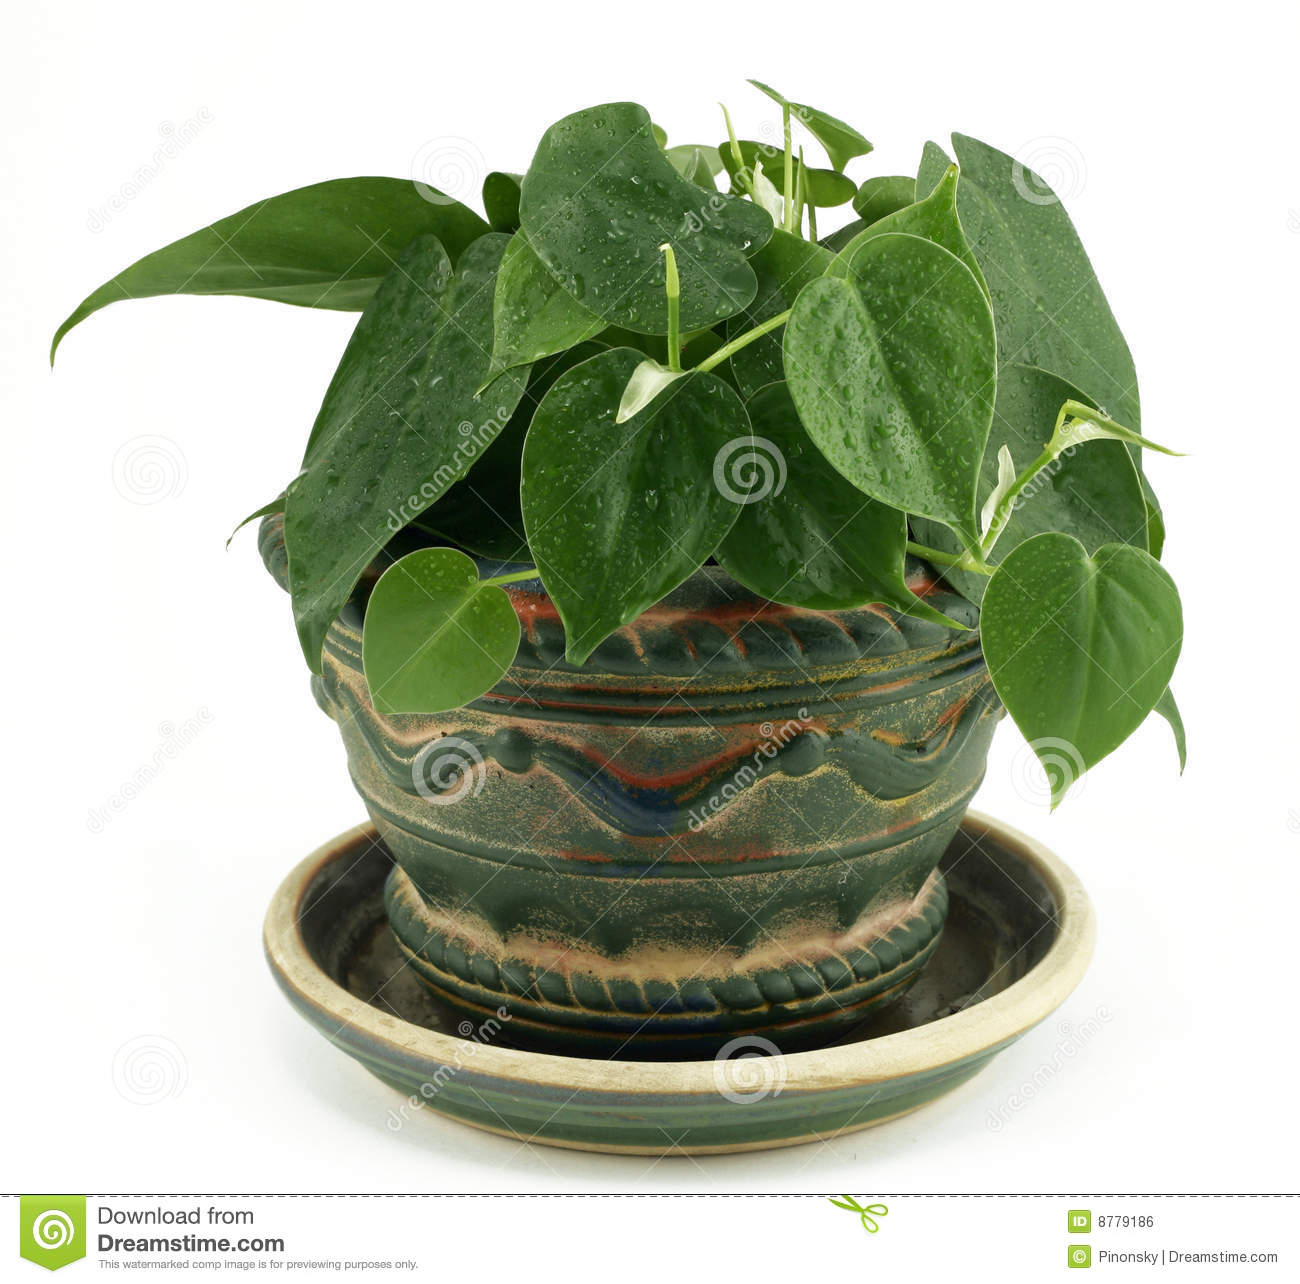 Houseplant Potted del Philodendron en blanco